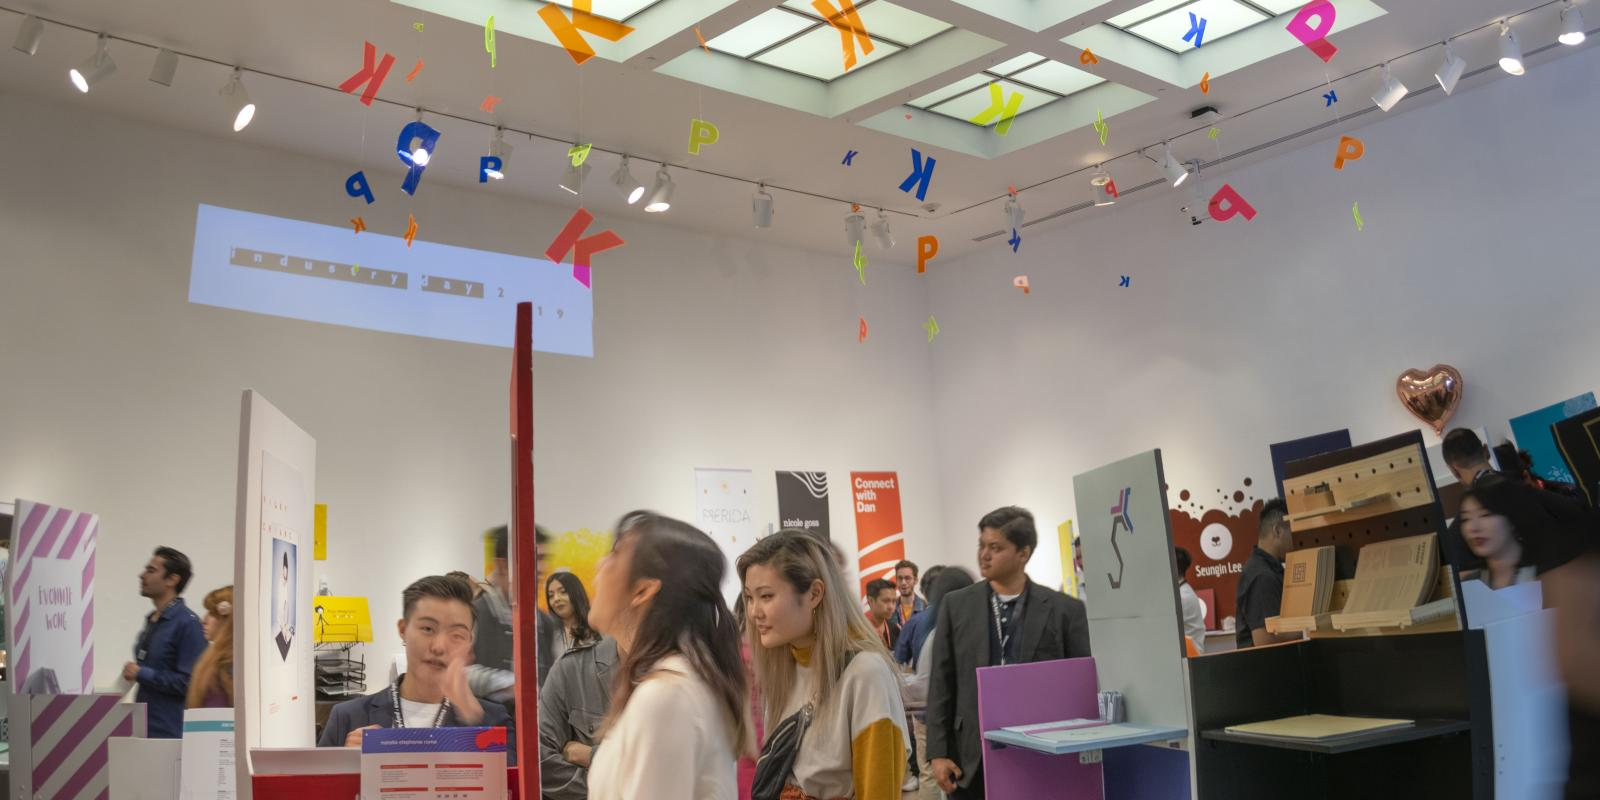 Senior Portfolio area on Industry Day, Exhibition: PolyKroma 2019, Apr.27, 2019 to May 19, 2019, Co-curated by Michele Cairella Fillmore & Sooyun Im, W. Keith & Janet Kellogg Art Gallery, Cal Poly Pomona.